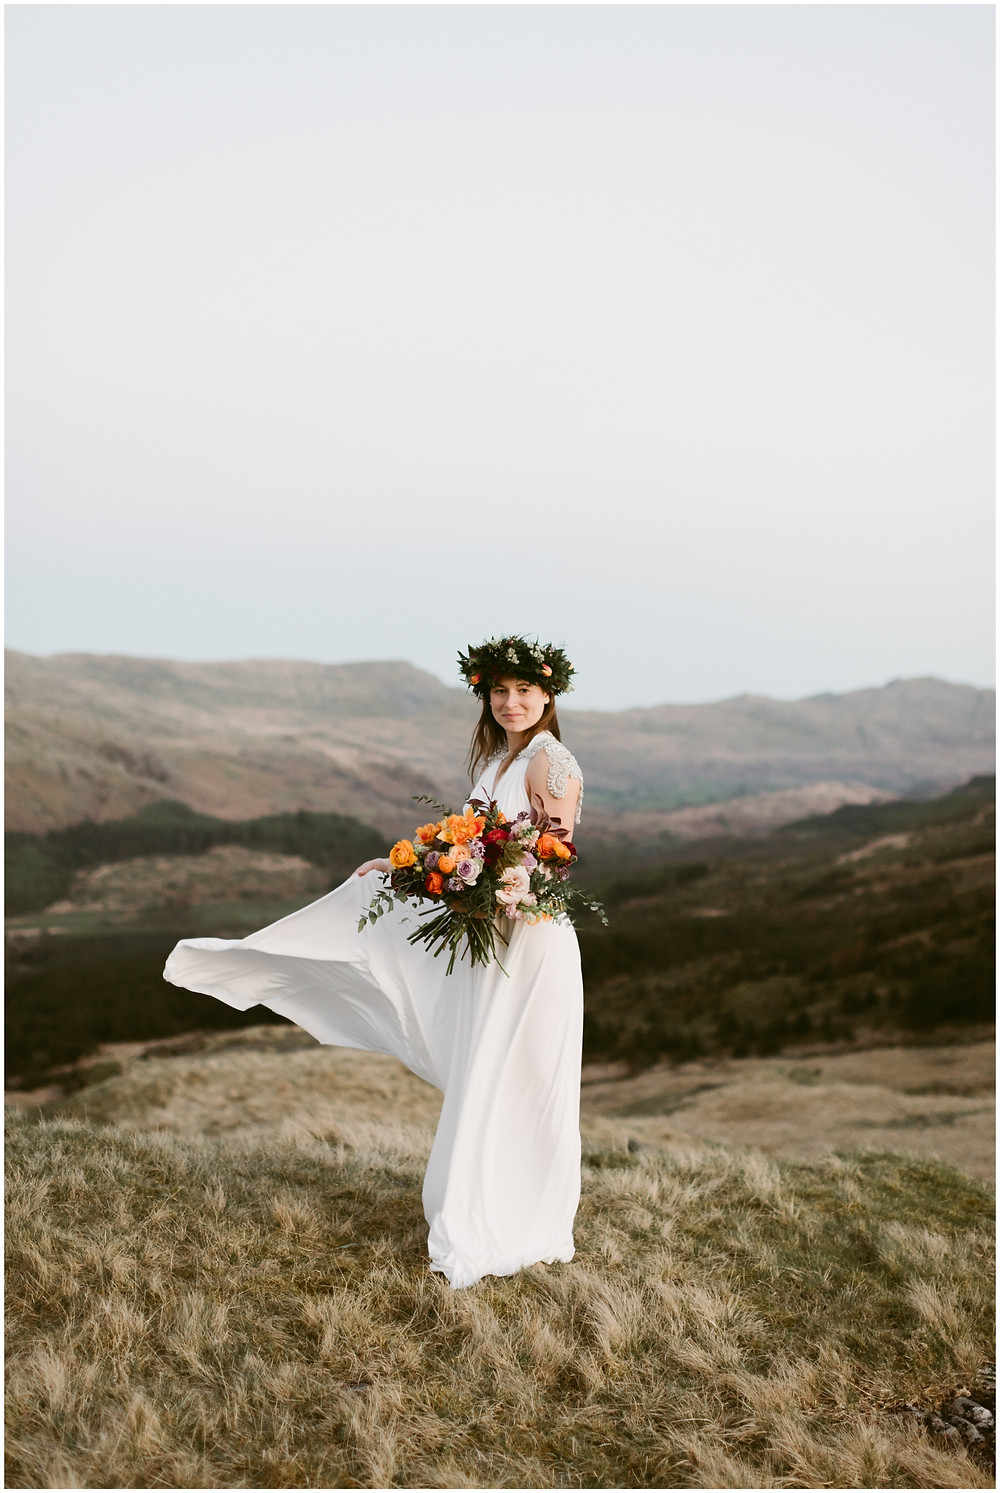 Outdoor, adventure elopement in Great Britain